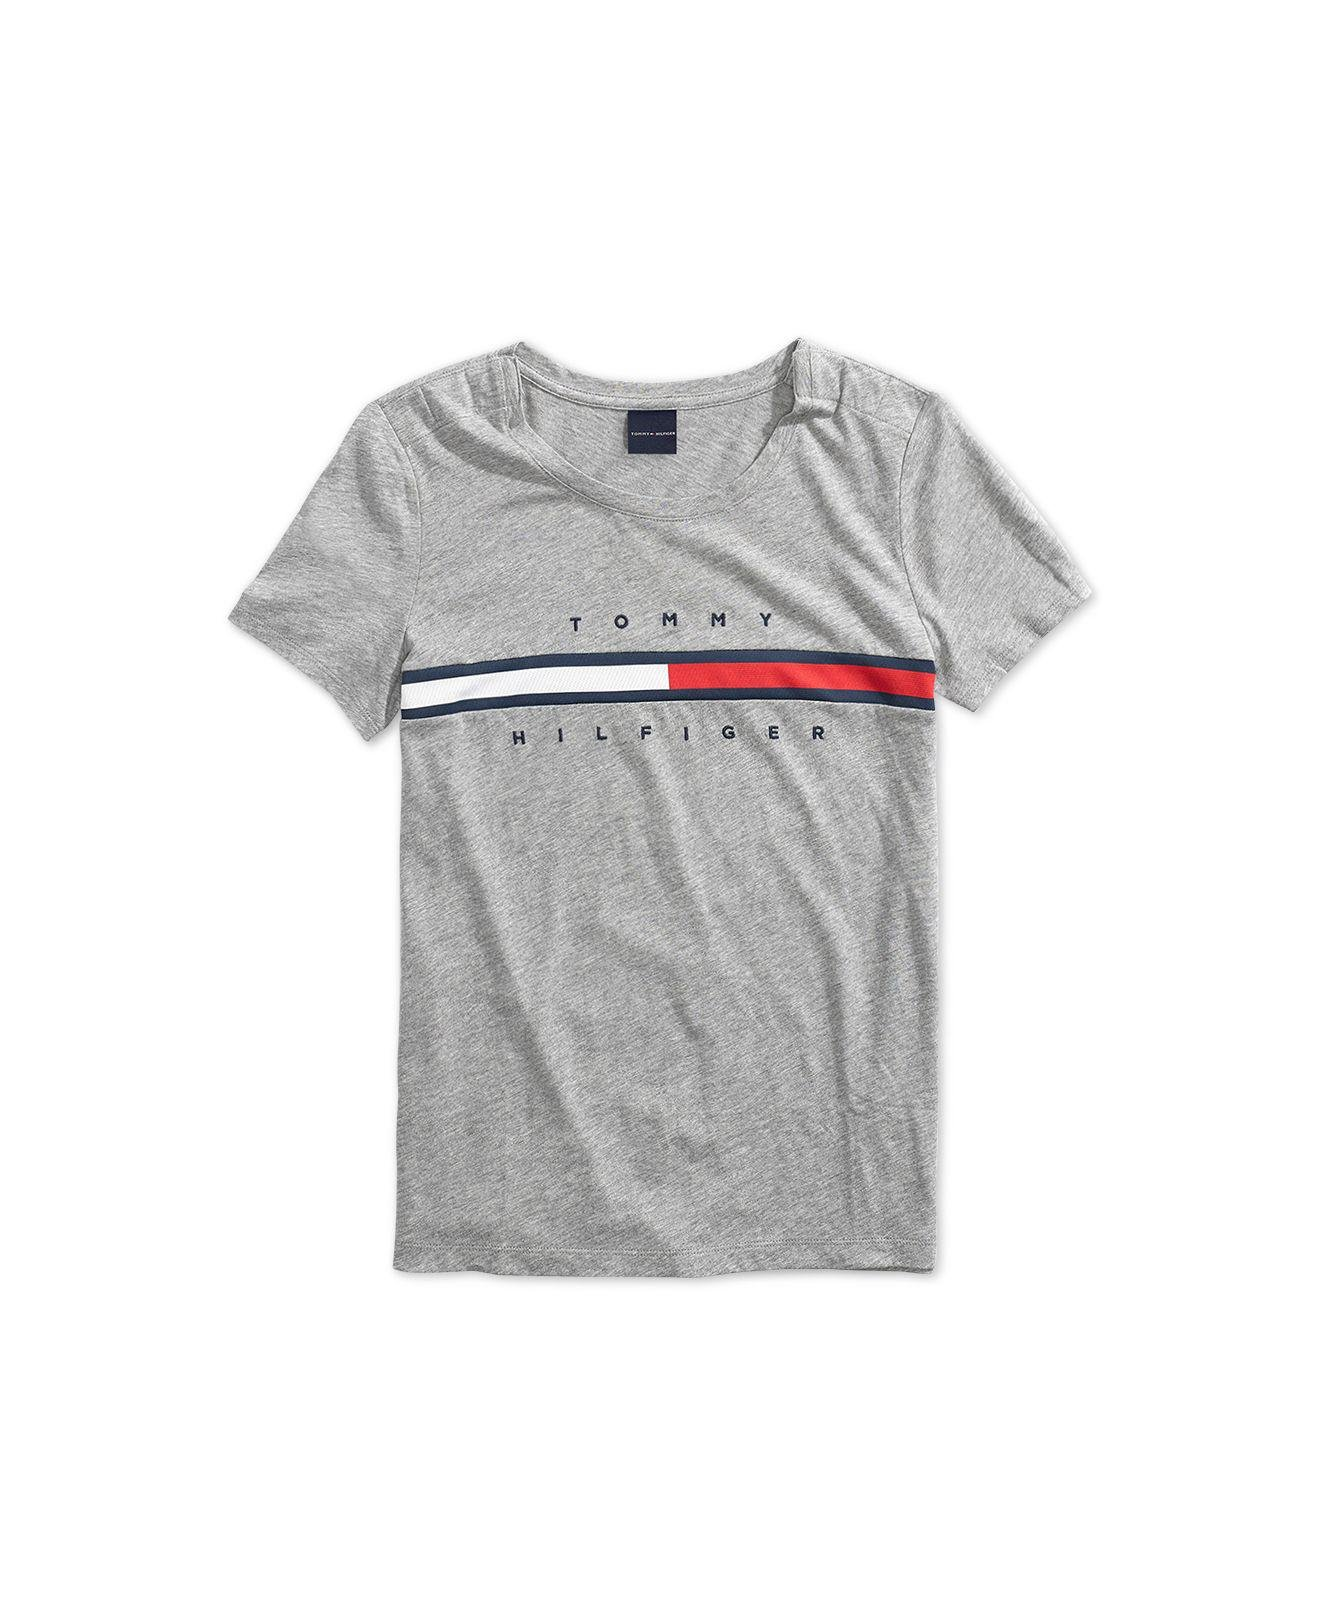 0c20c1f4 Lyst - Tommy Hilfiger Signature T-shirt With Magnetic Closure At ...